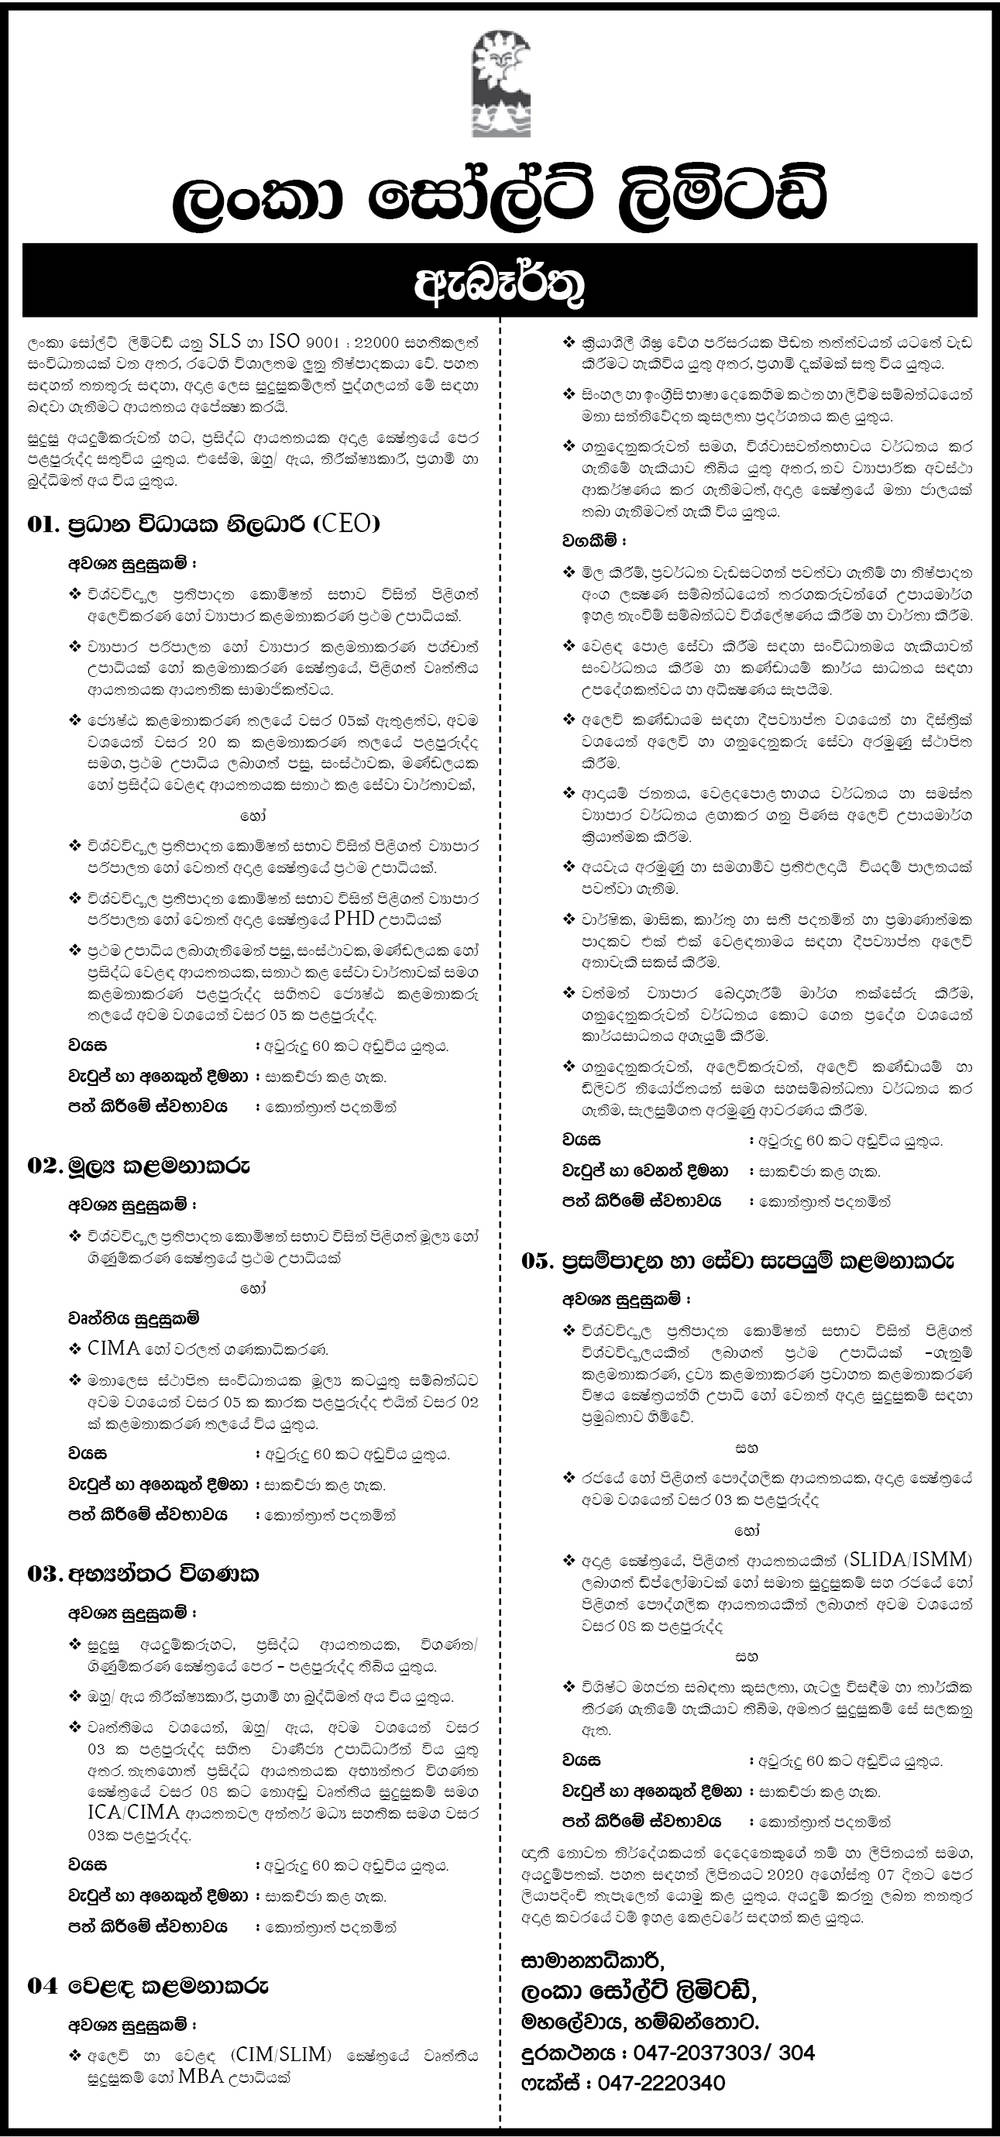 Chief Executive Officer, Finance Manager, Internal Auditor, Sales Manager, Procurement & Logistic Manager - Lanka Salt Limited